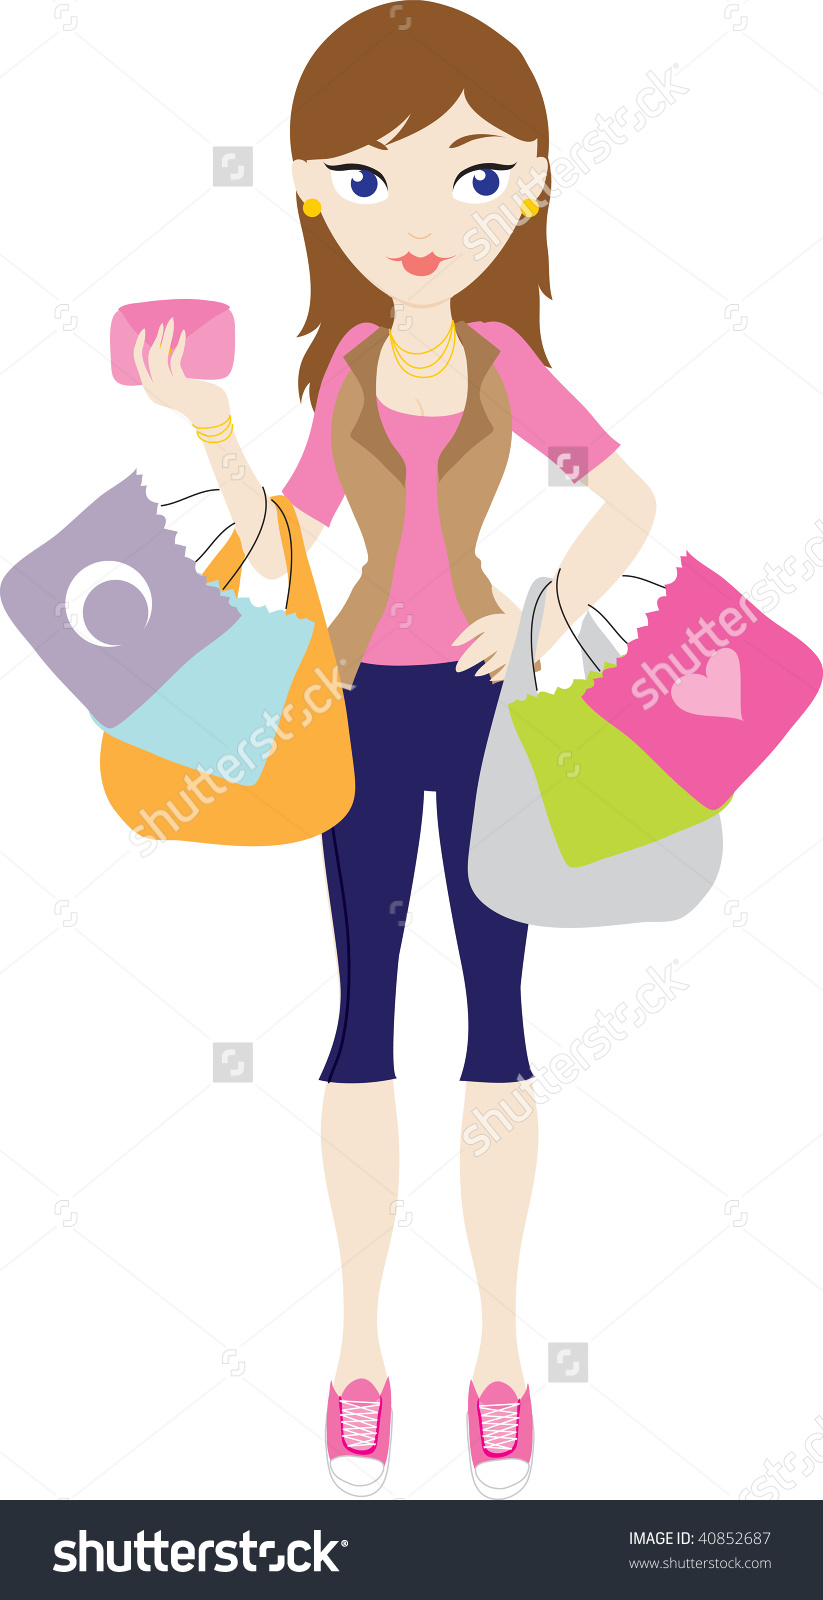 clipart of woman shopping clipground black woman shopping clipart black woman shopping clipart